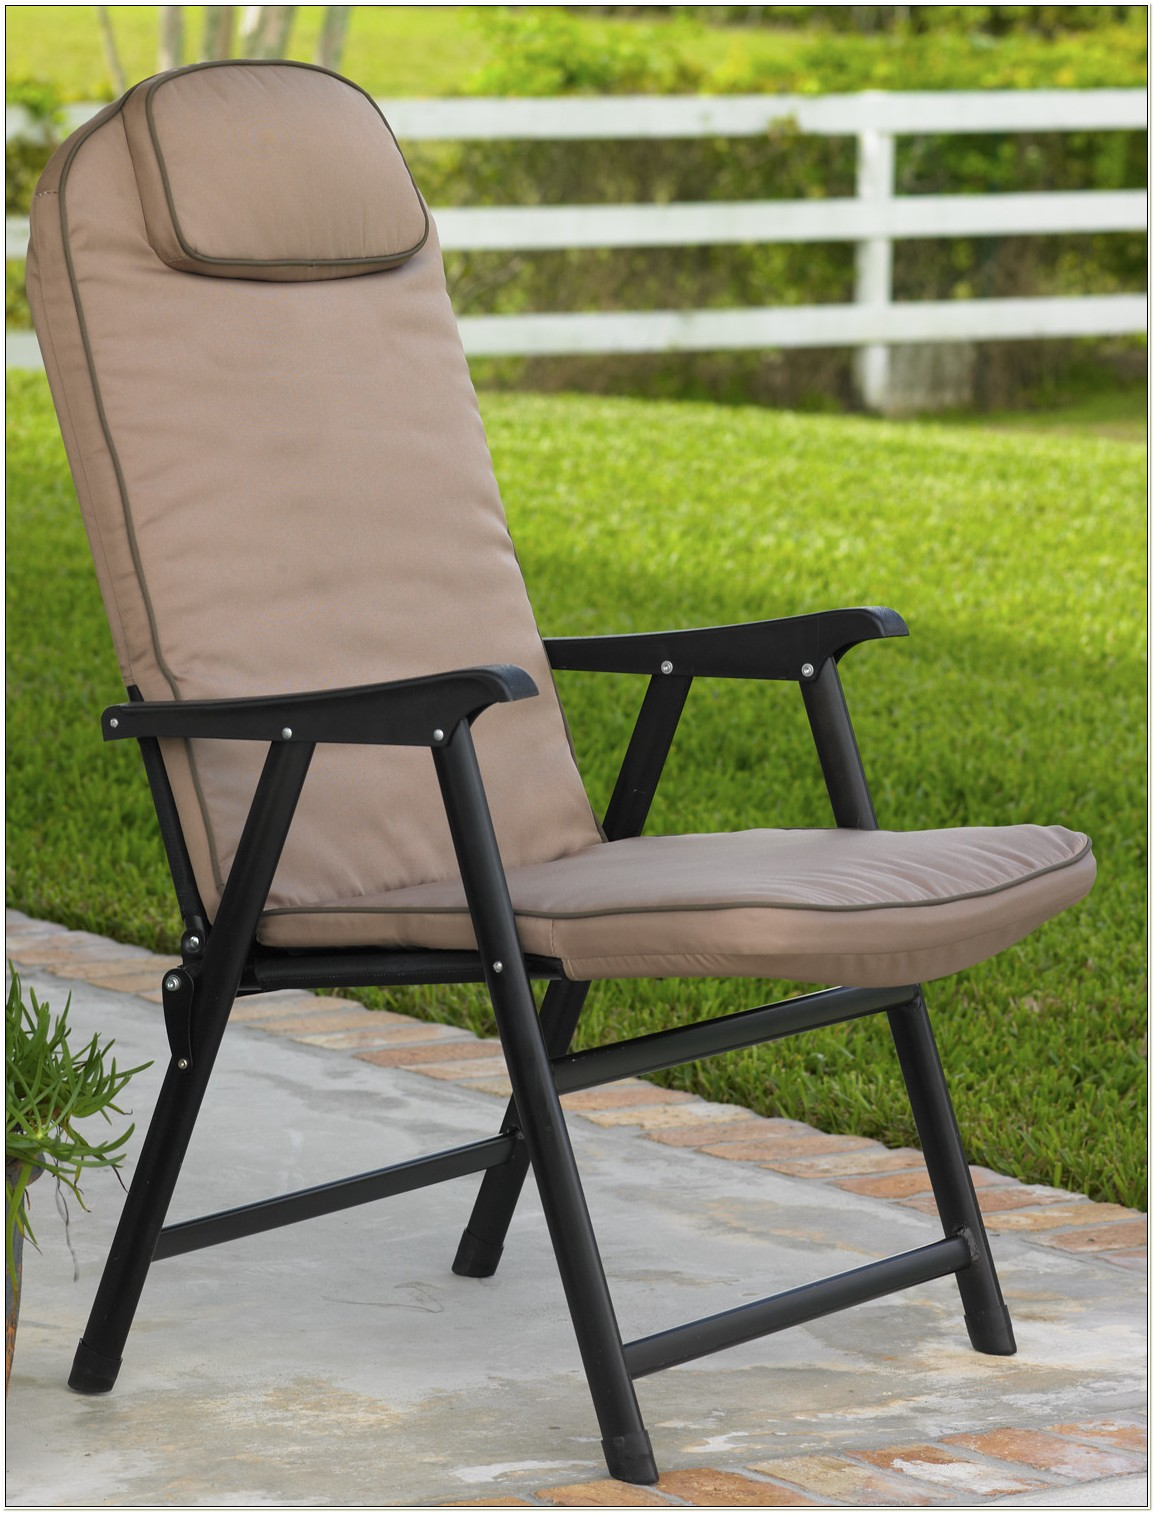 Cheap Plastic Outdoor Folding Chairs